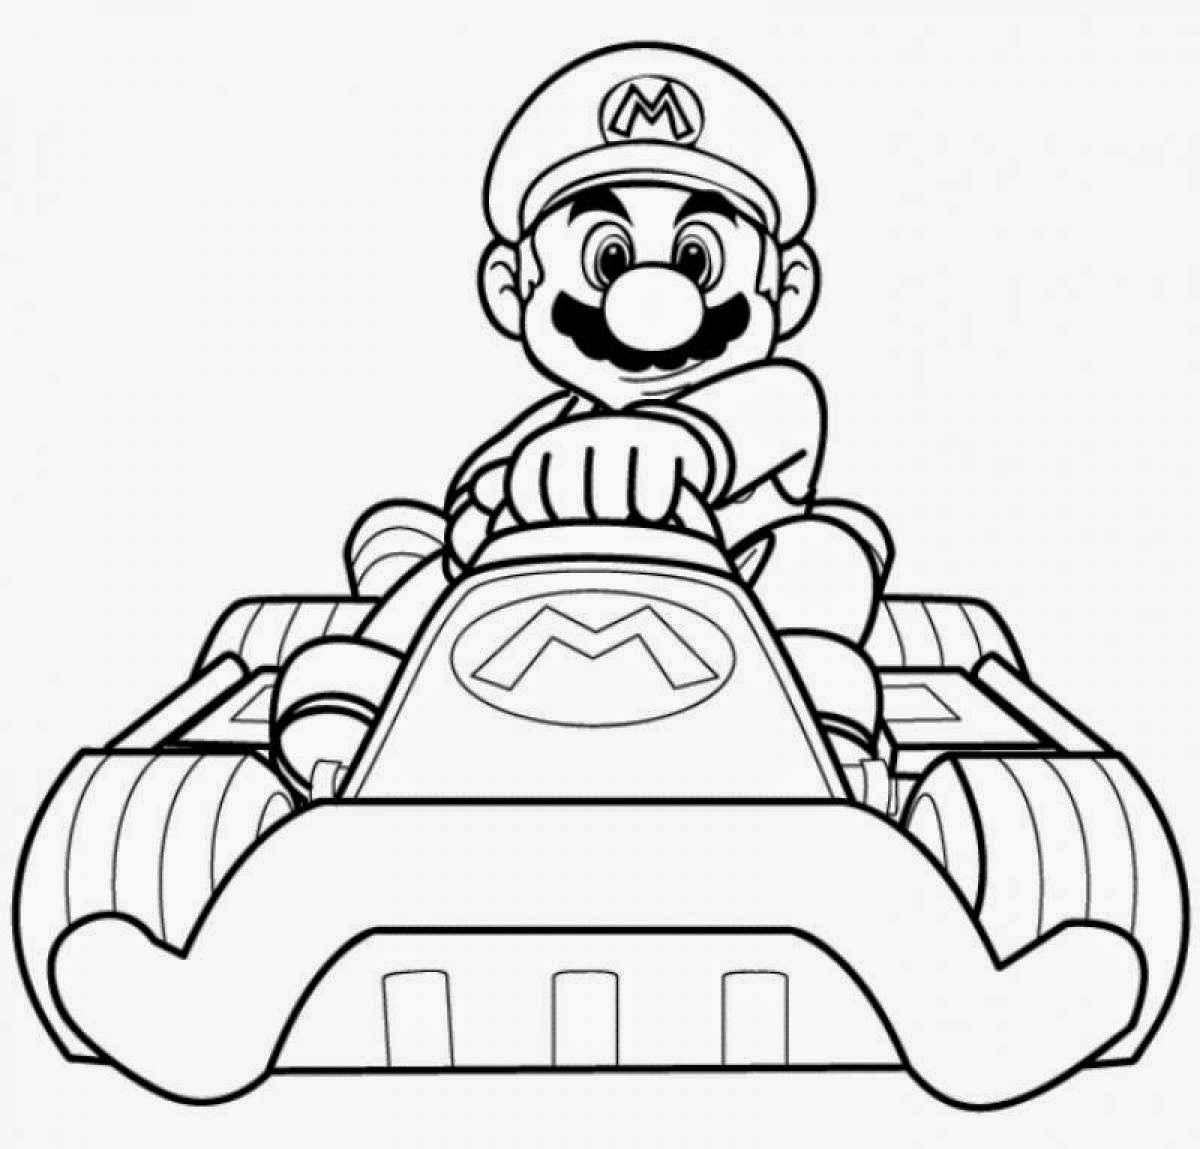 Free mario coloring pages to print - Free Mario Coloring Pages To Print 46